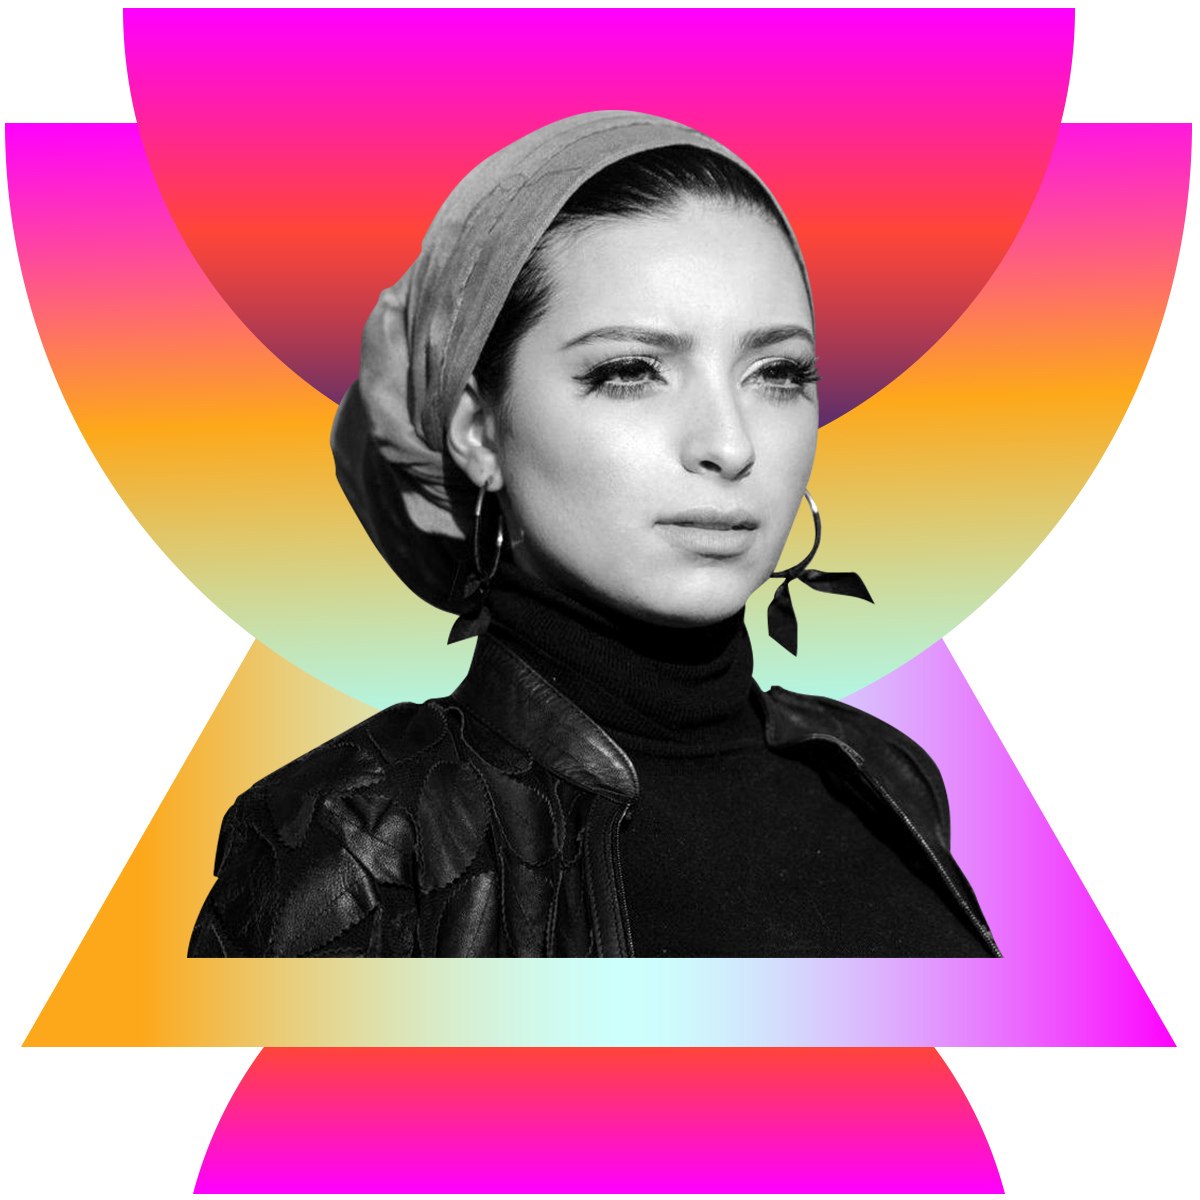 Photo illustration of Noor Tagouri in black and white surrounded by colored gradients